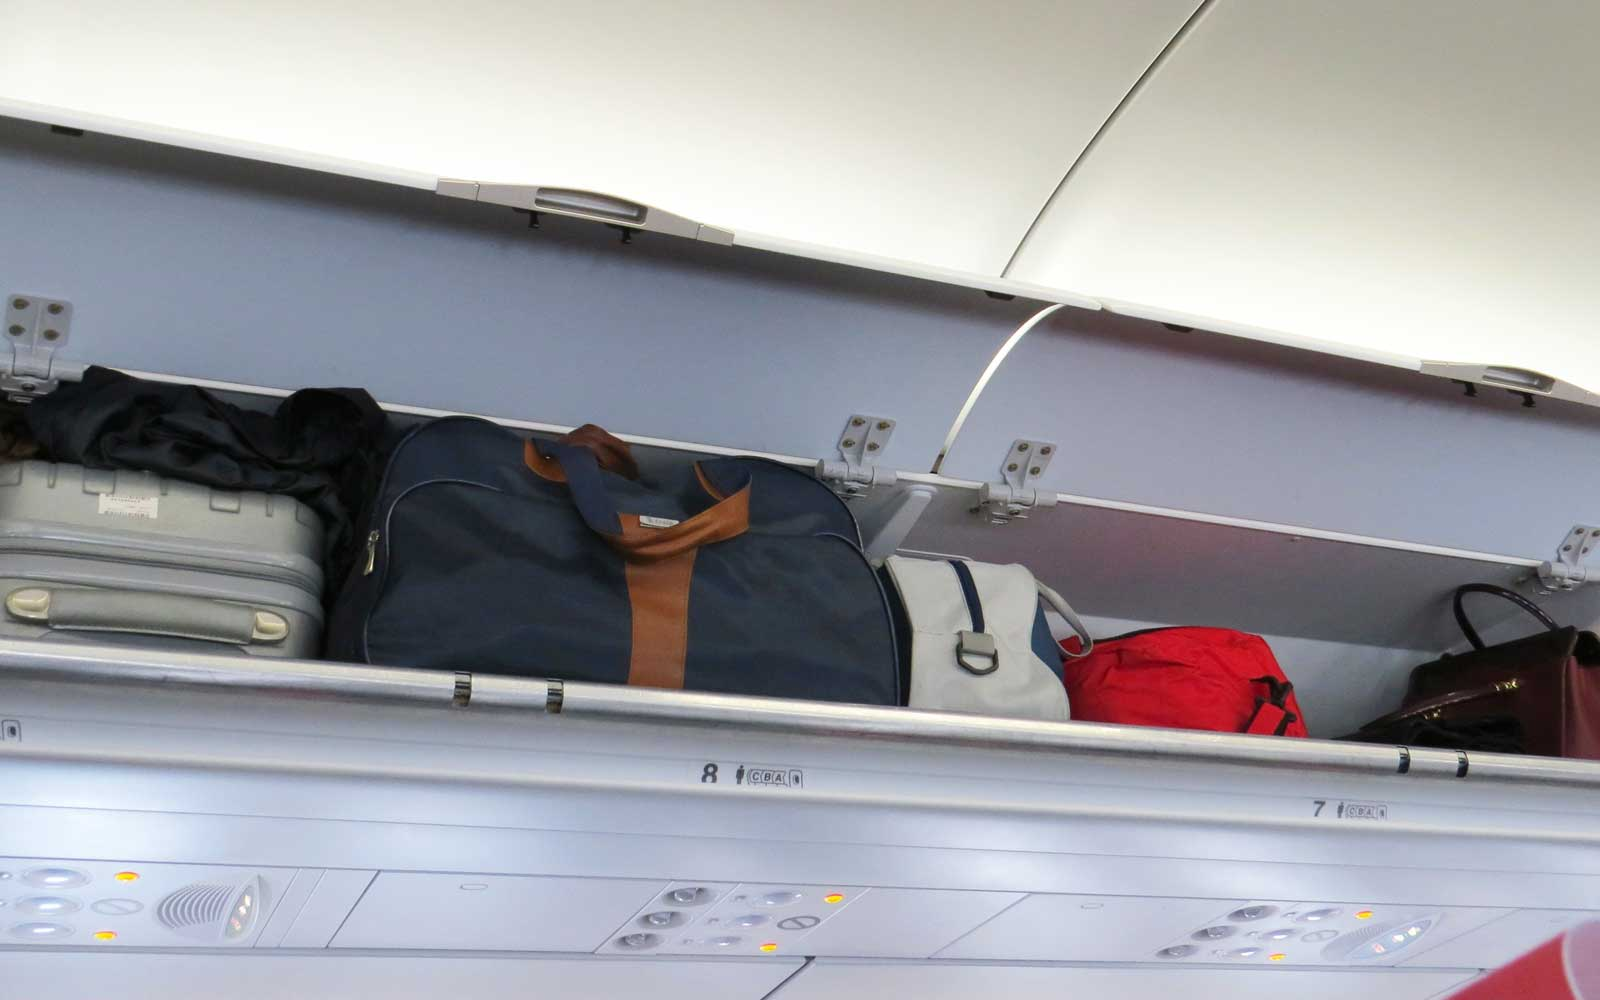 Italy bans overhead luggage lockers, consider it a health risk